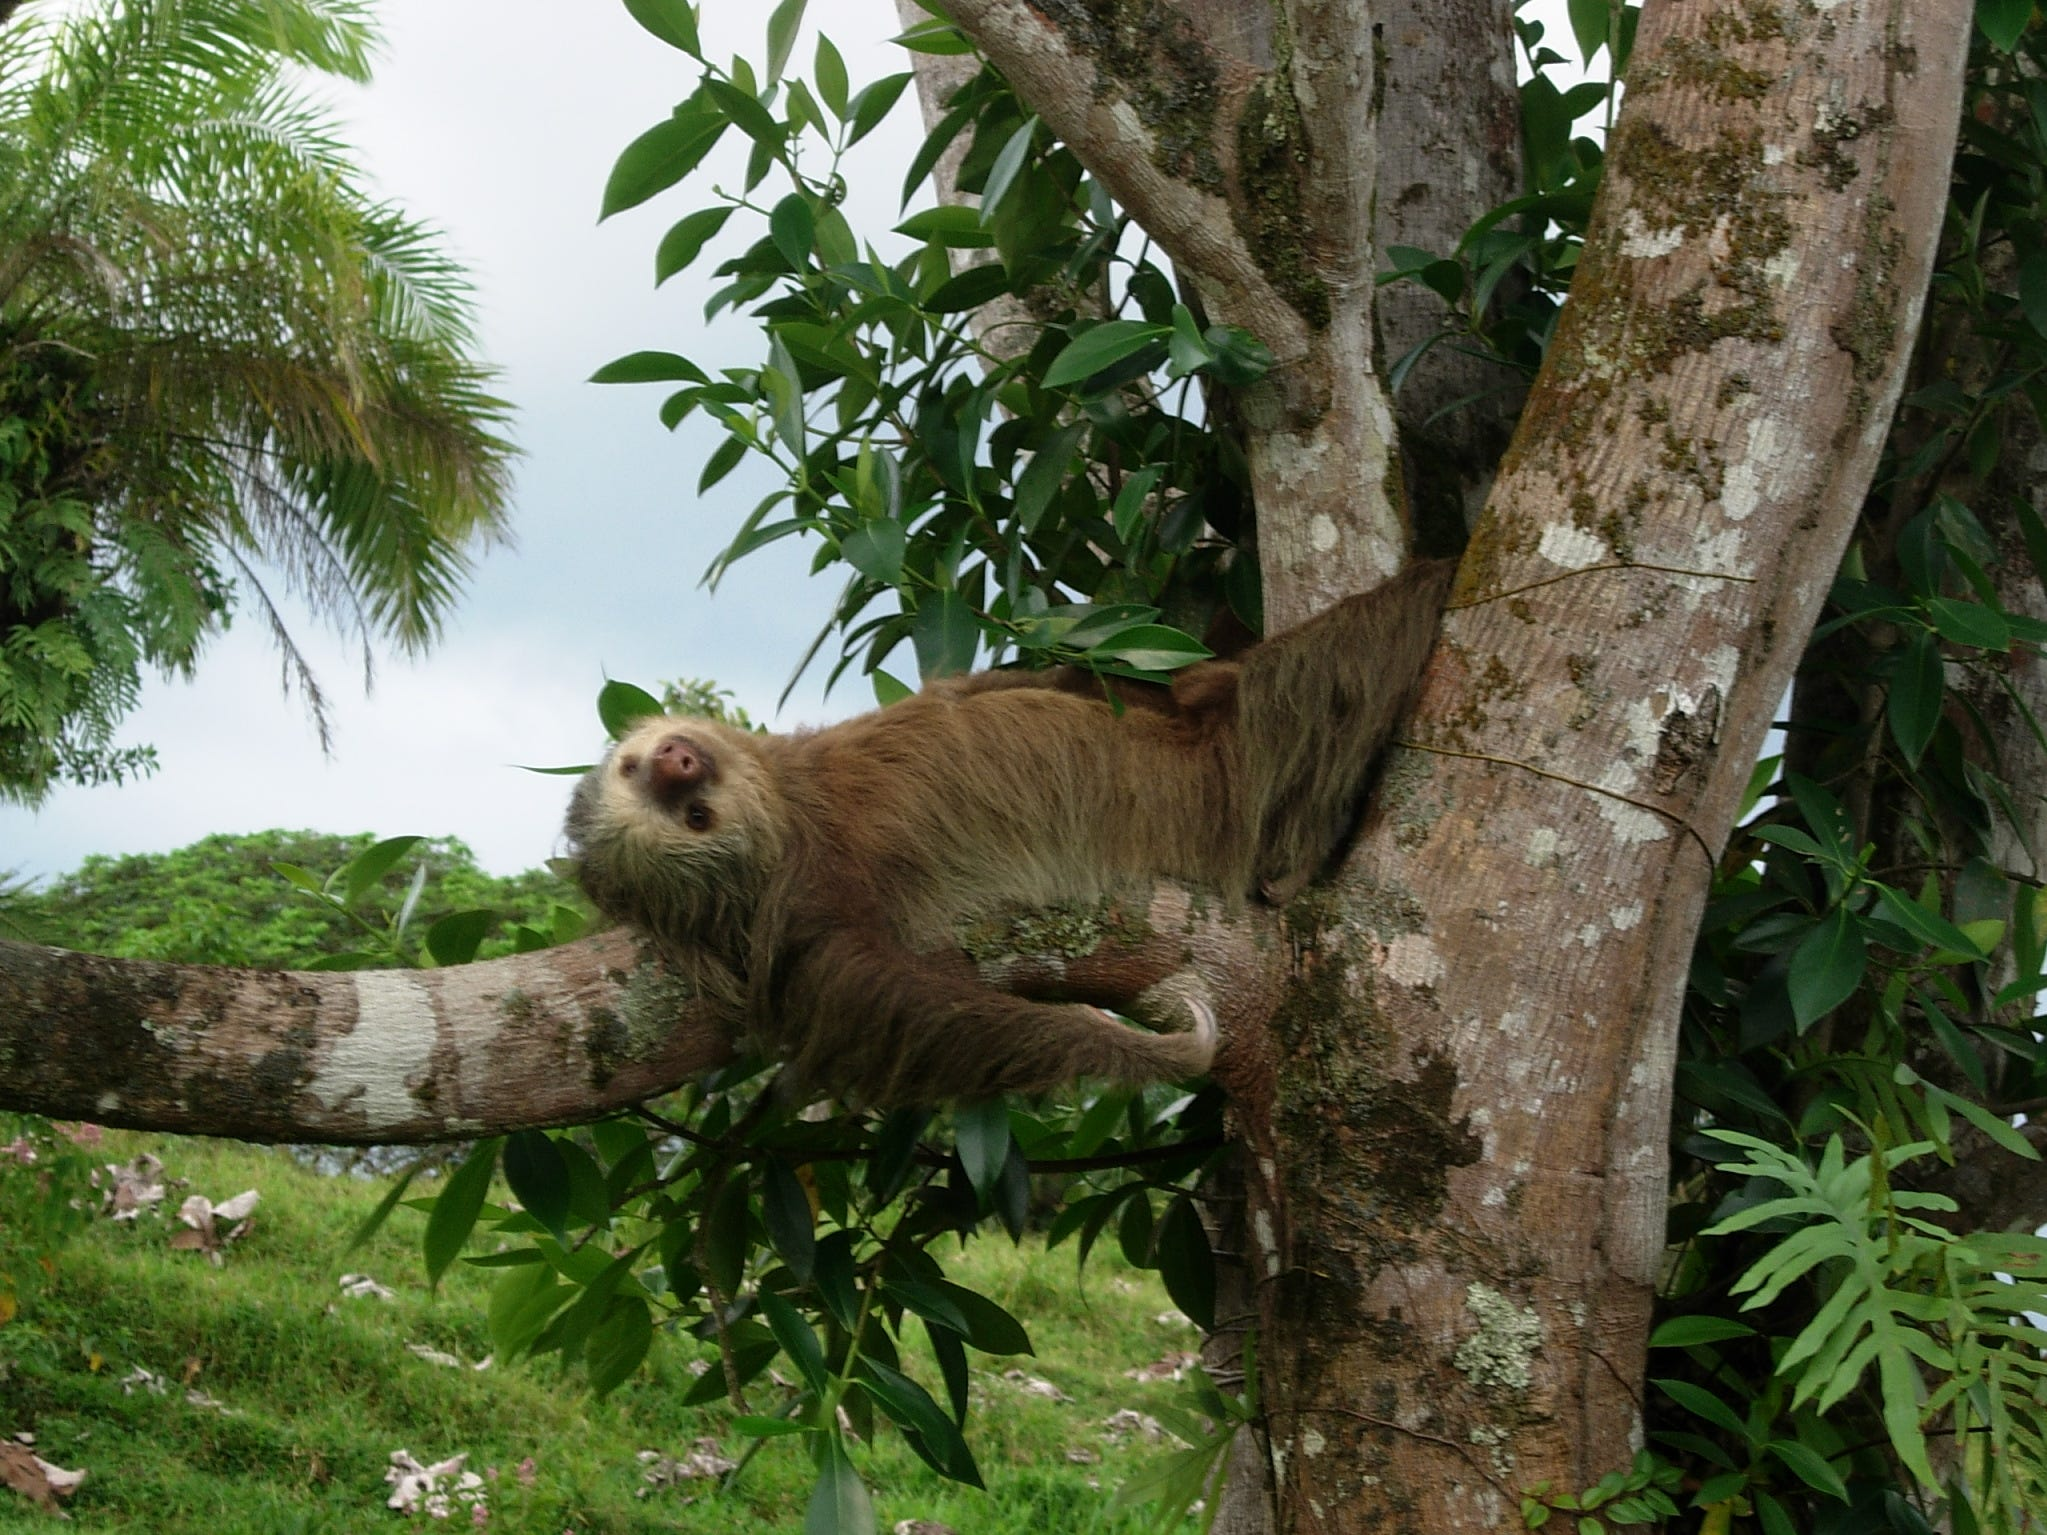 Costa Rica has nearly 250 species of mammals, including the two-toed sloth.